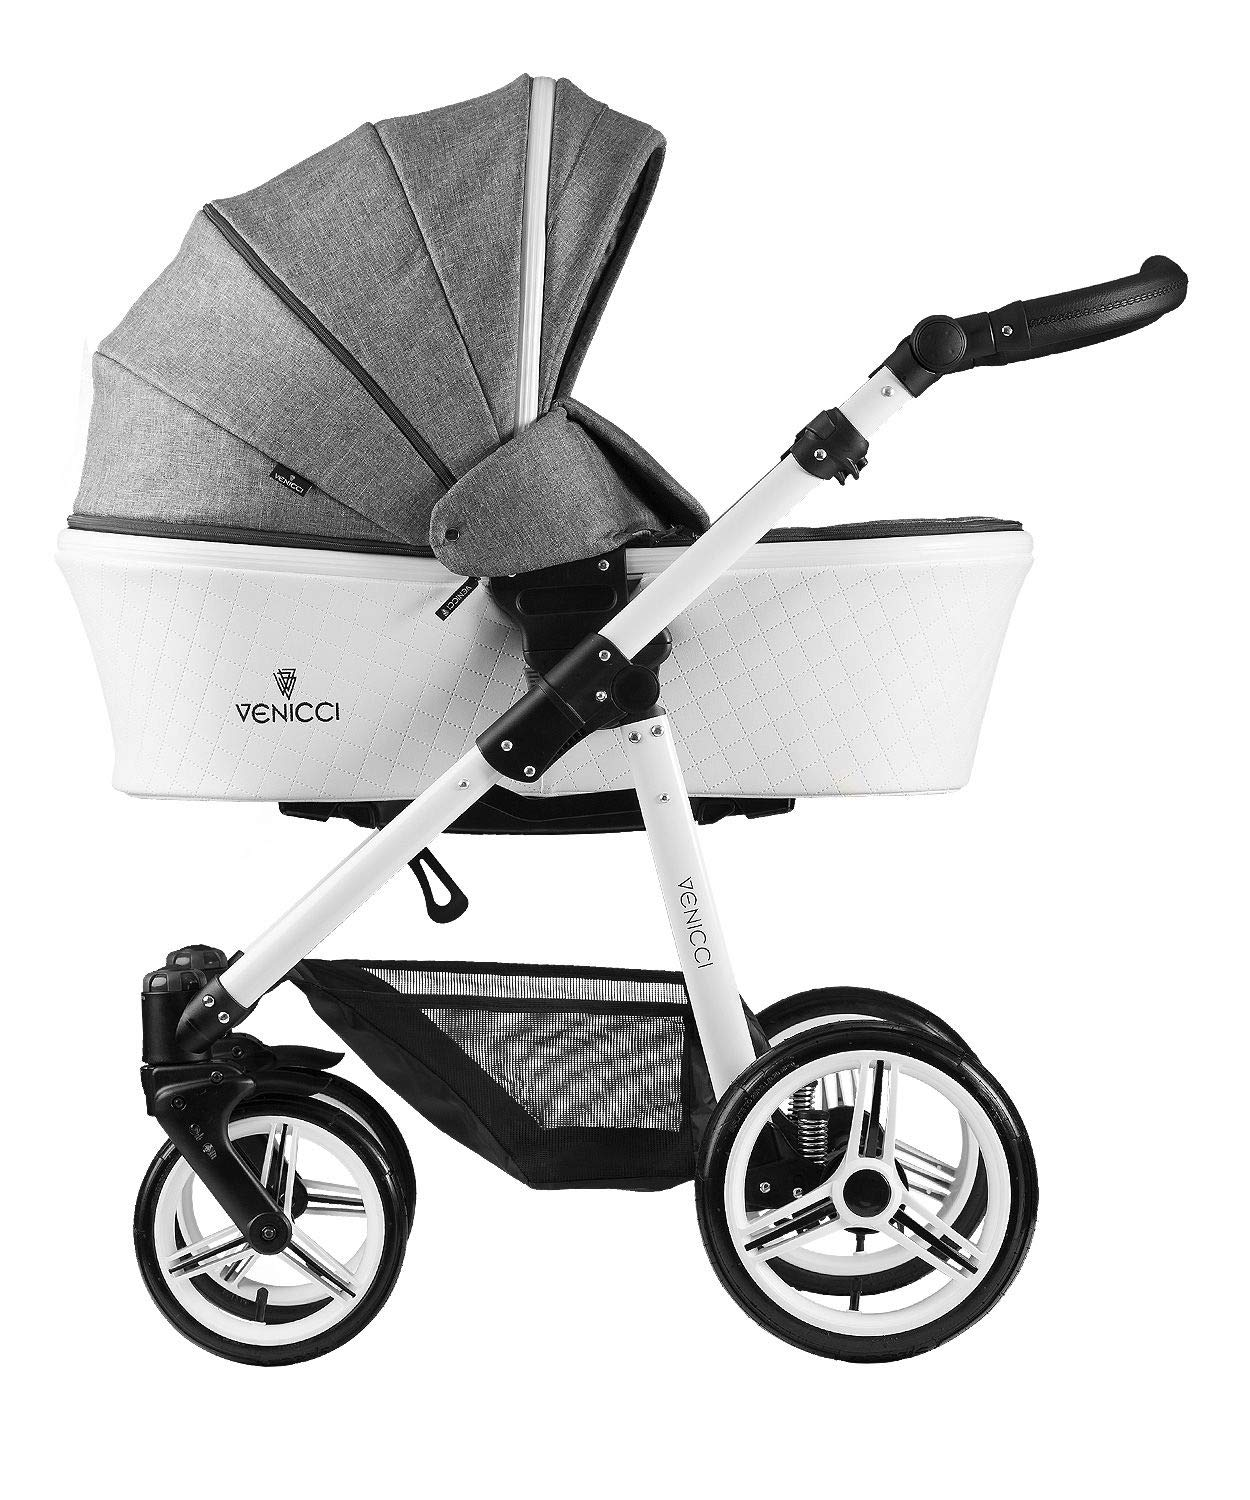 Venicci Pure 3-in-1 Travel System - Denim Grey - with Carrycot + Car Seat + Changing Bag + Apron + Raincover + Mosquito Net + 5-Point Harness and UV 50+ Fabric + Car Seat Adapters + Cup Holder Venicci 3 in 1 Travel System with included Group 0+ Car Seat Suitable for your baby from birth until 36 months 5-point harness to enhance the safety of your child 2